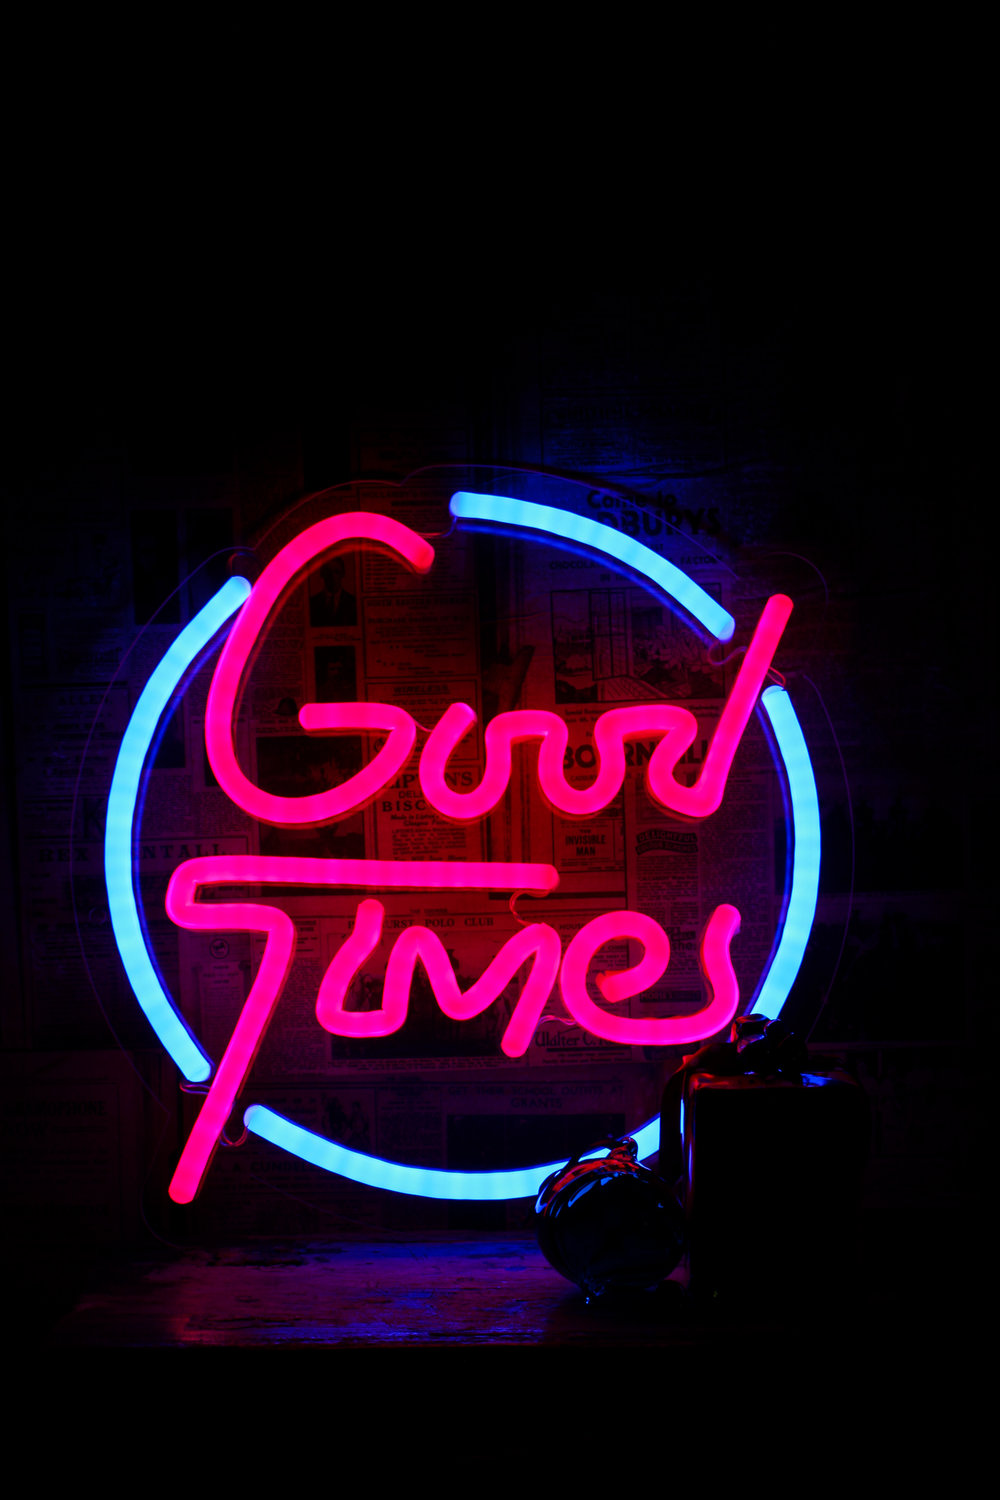 Love Inc Good Times Neon Sign – Christmas Gift Guide by Smartstyle Interiors.jpg